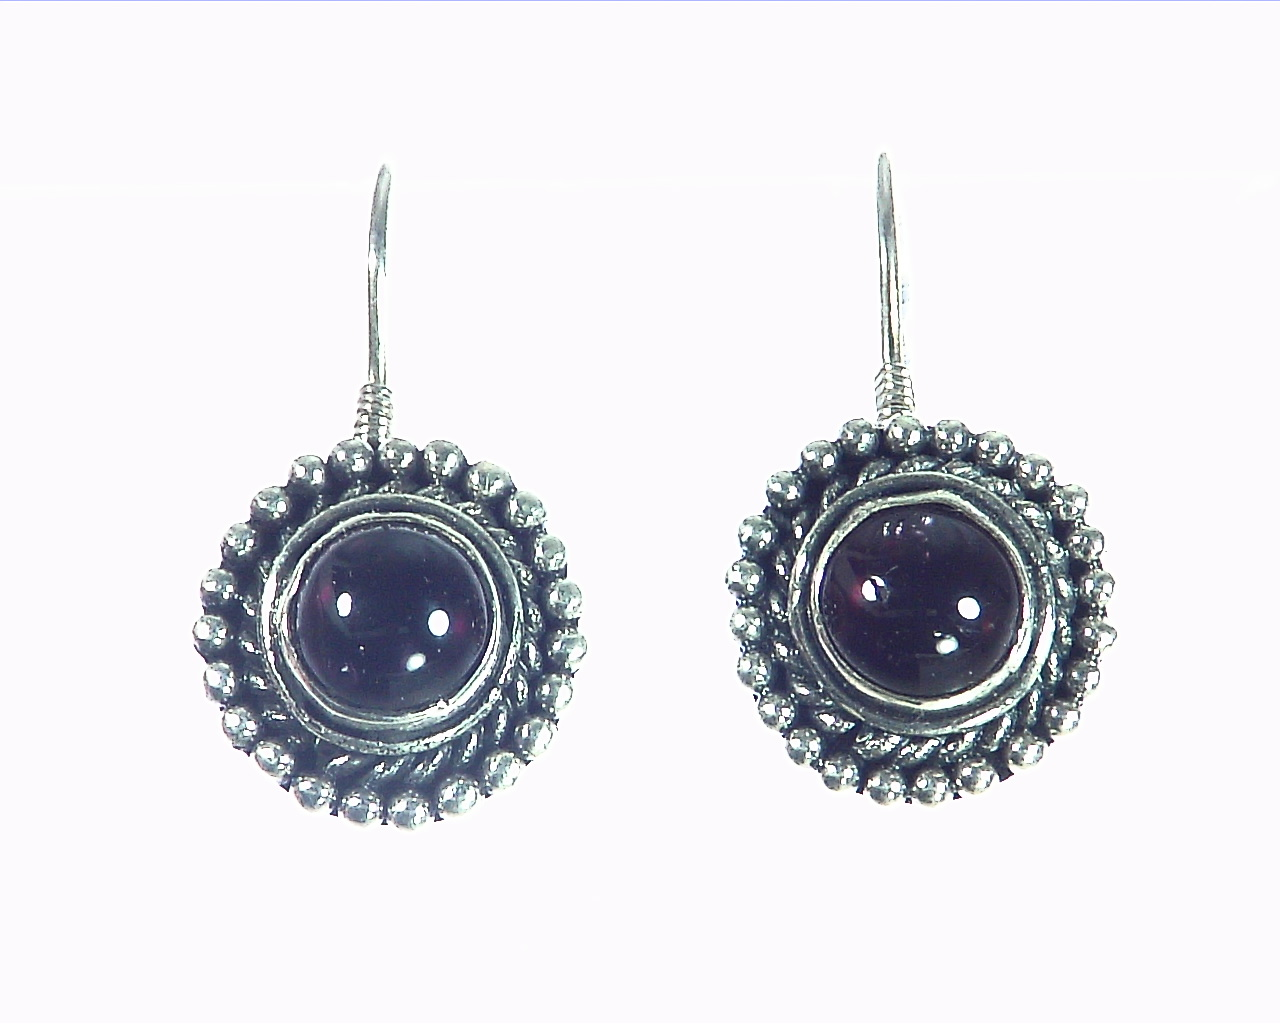 Garnet Cabasson Set in Sterling Silver Earring, 795